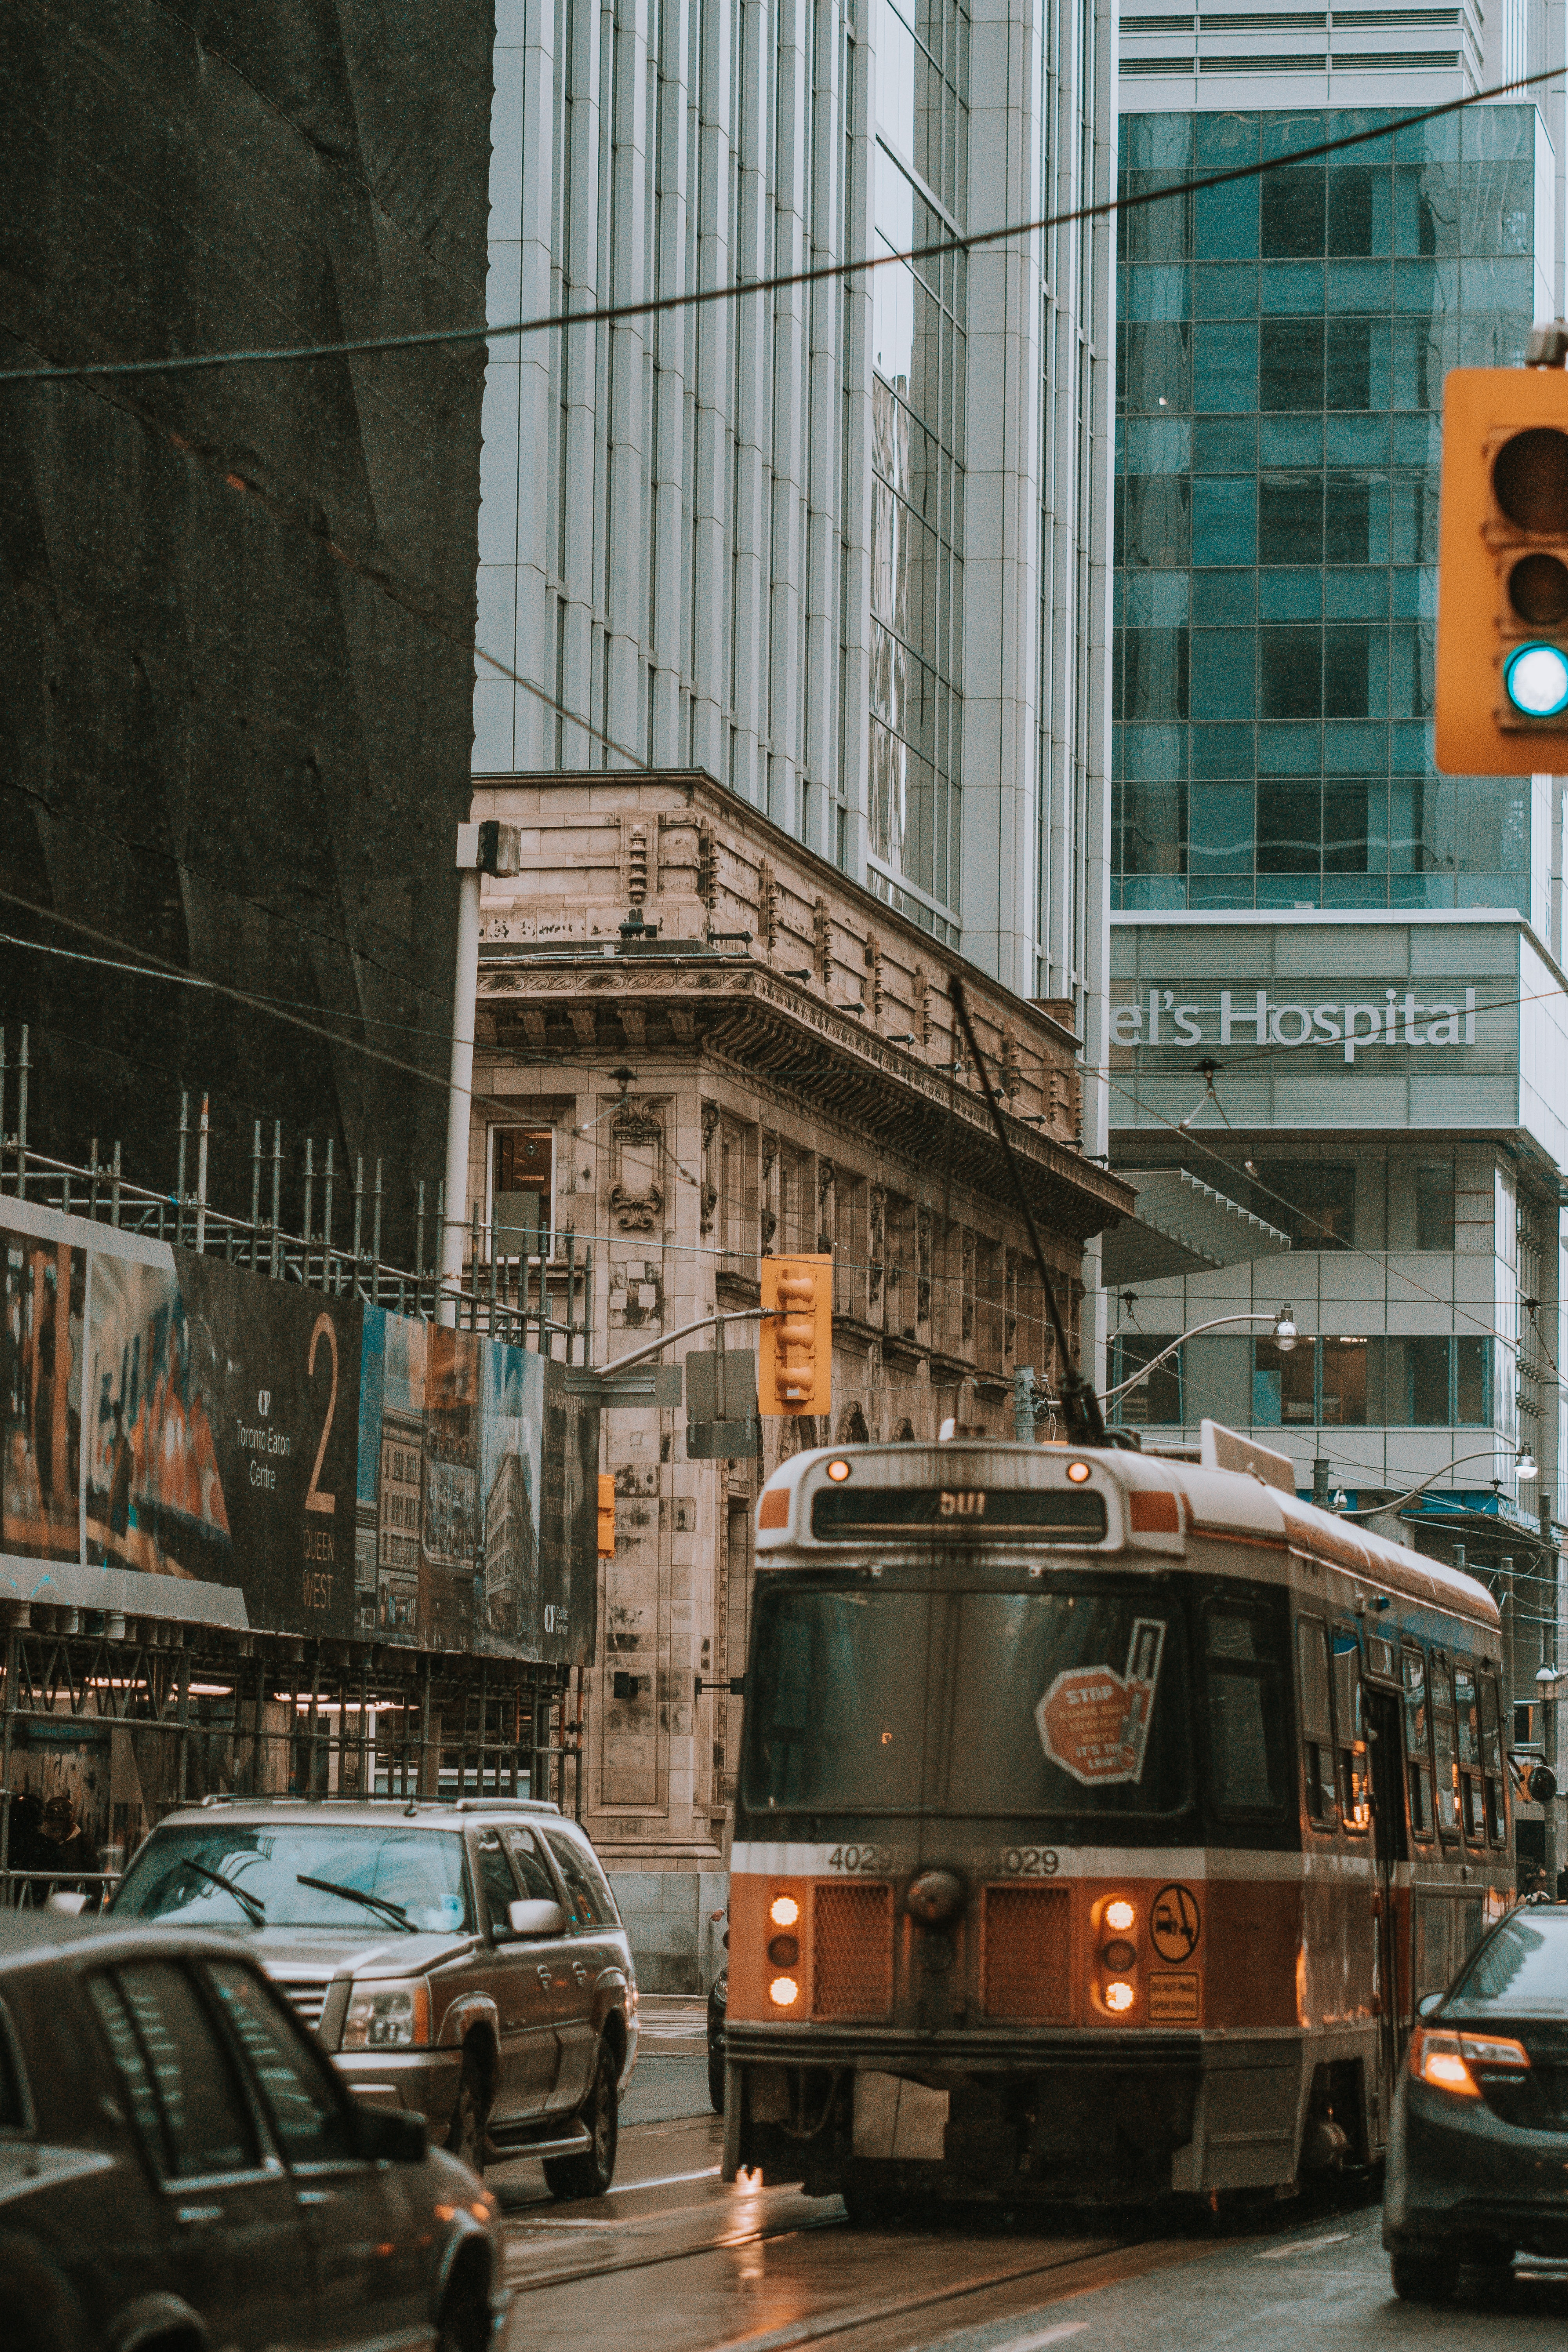 brown commuter bus on road near buildings during daytime